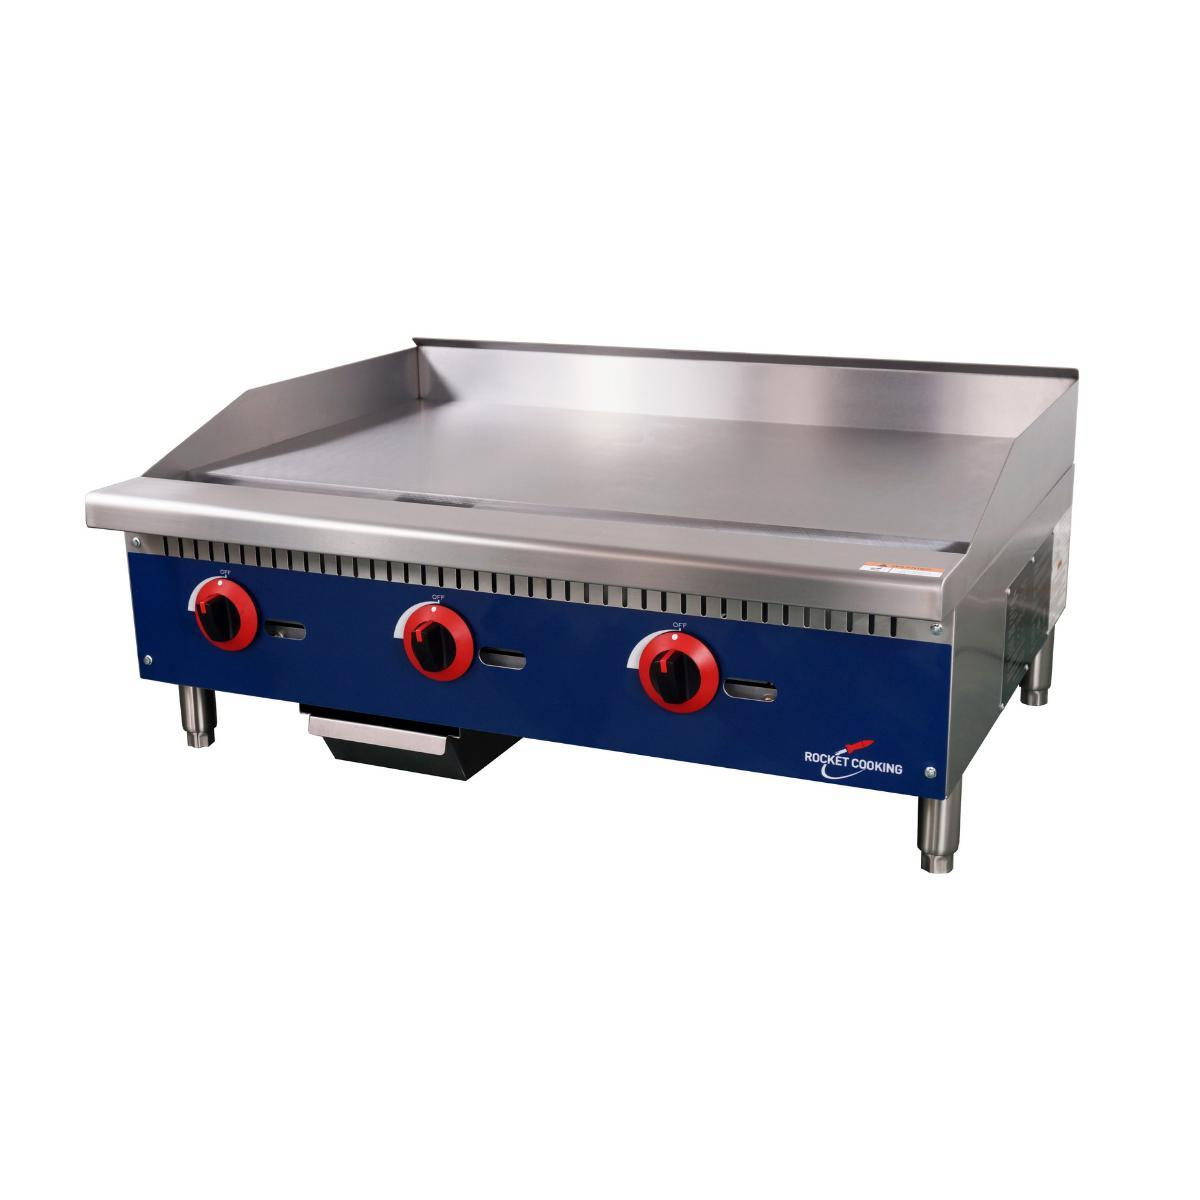 Rocket Cooking RCMG36 36 inch Manual Griddle